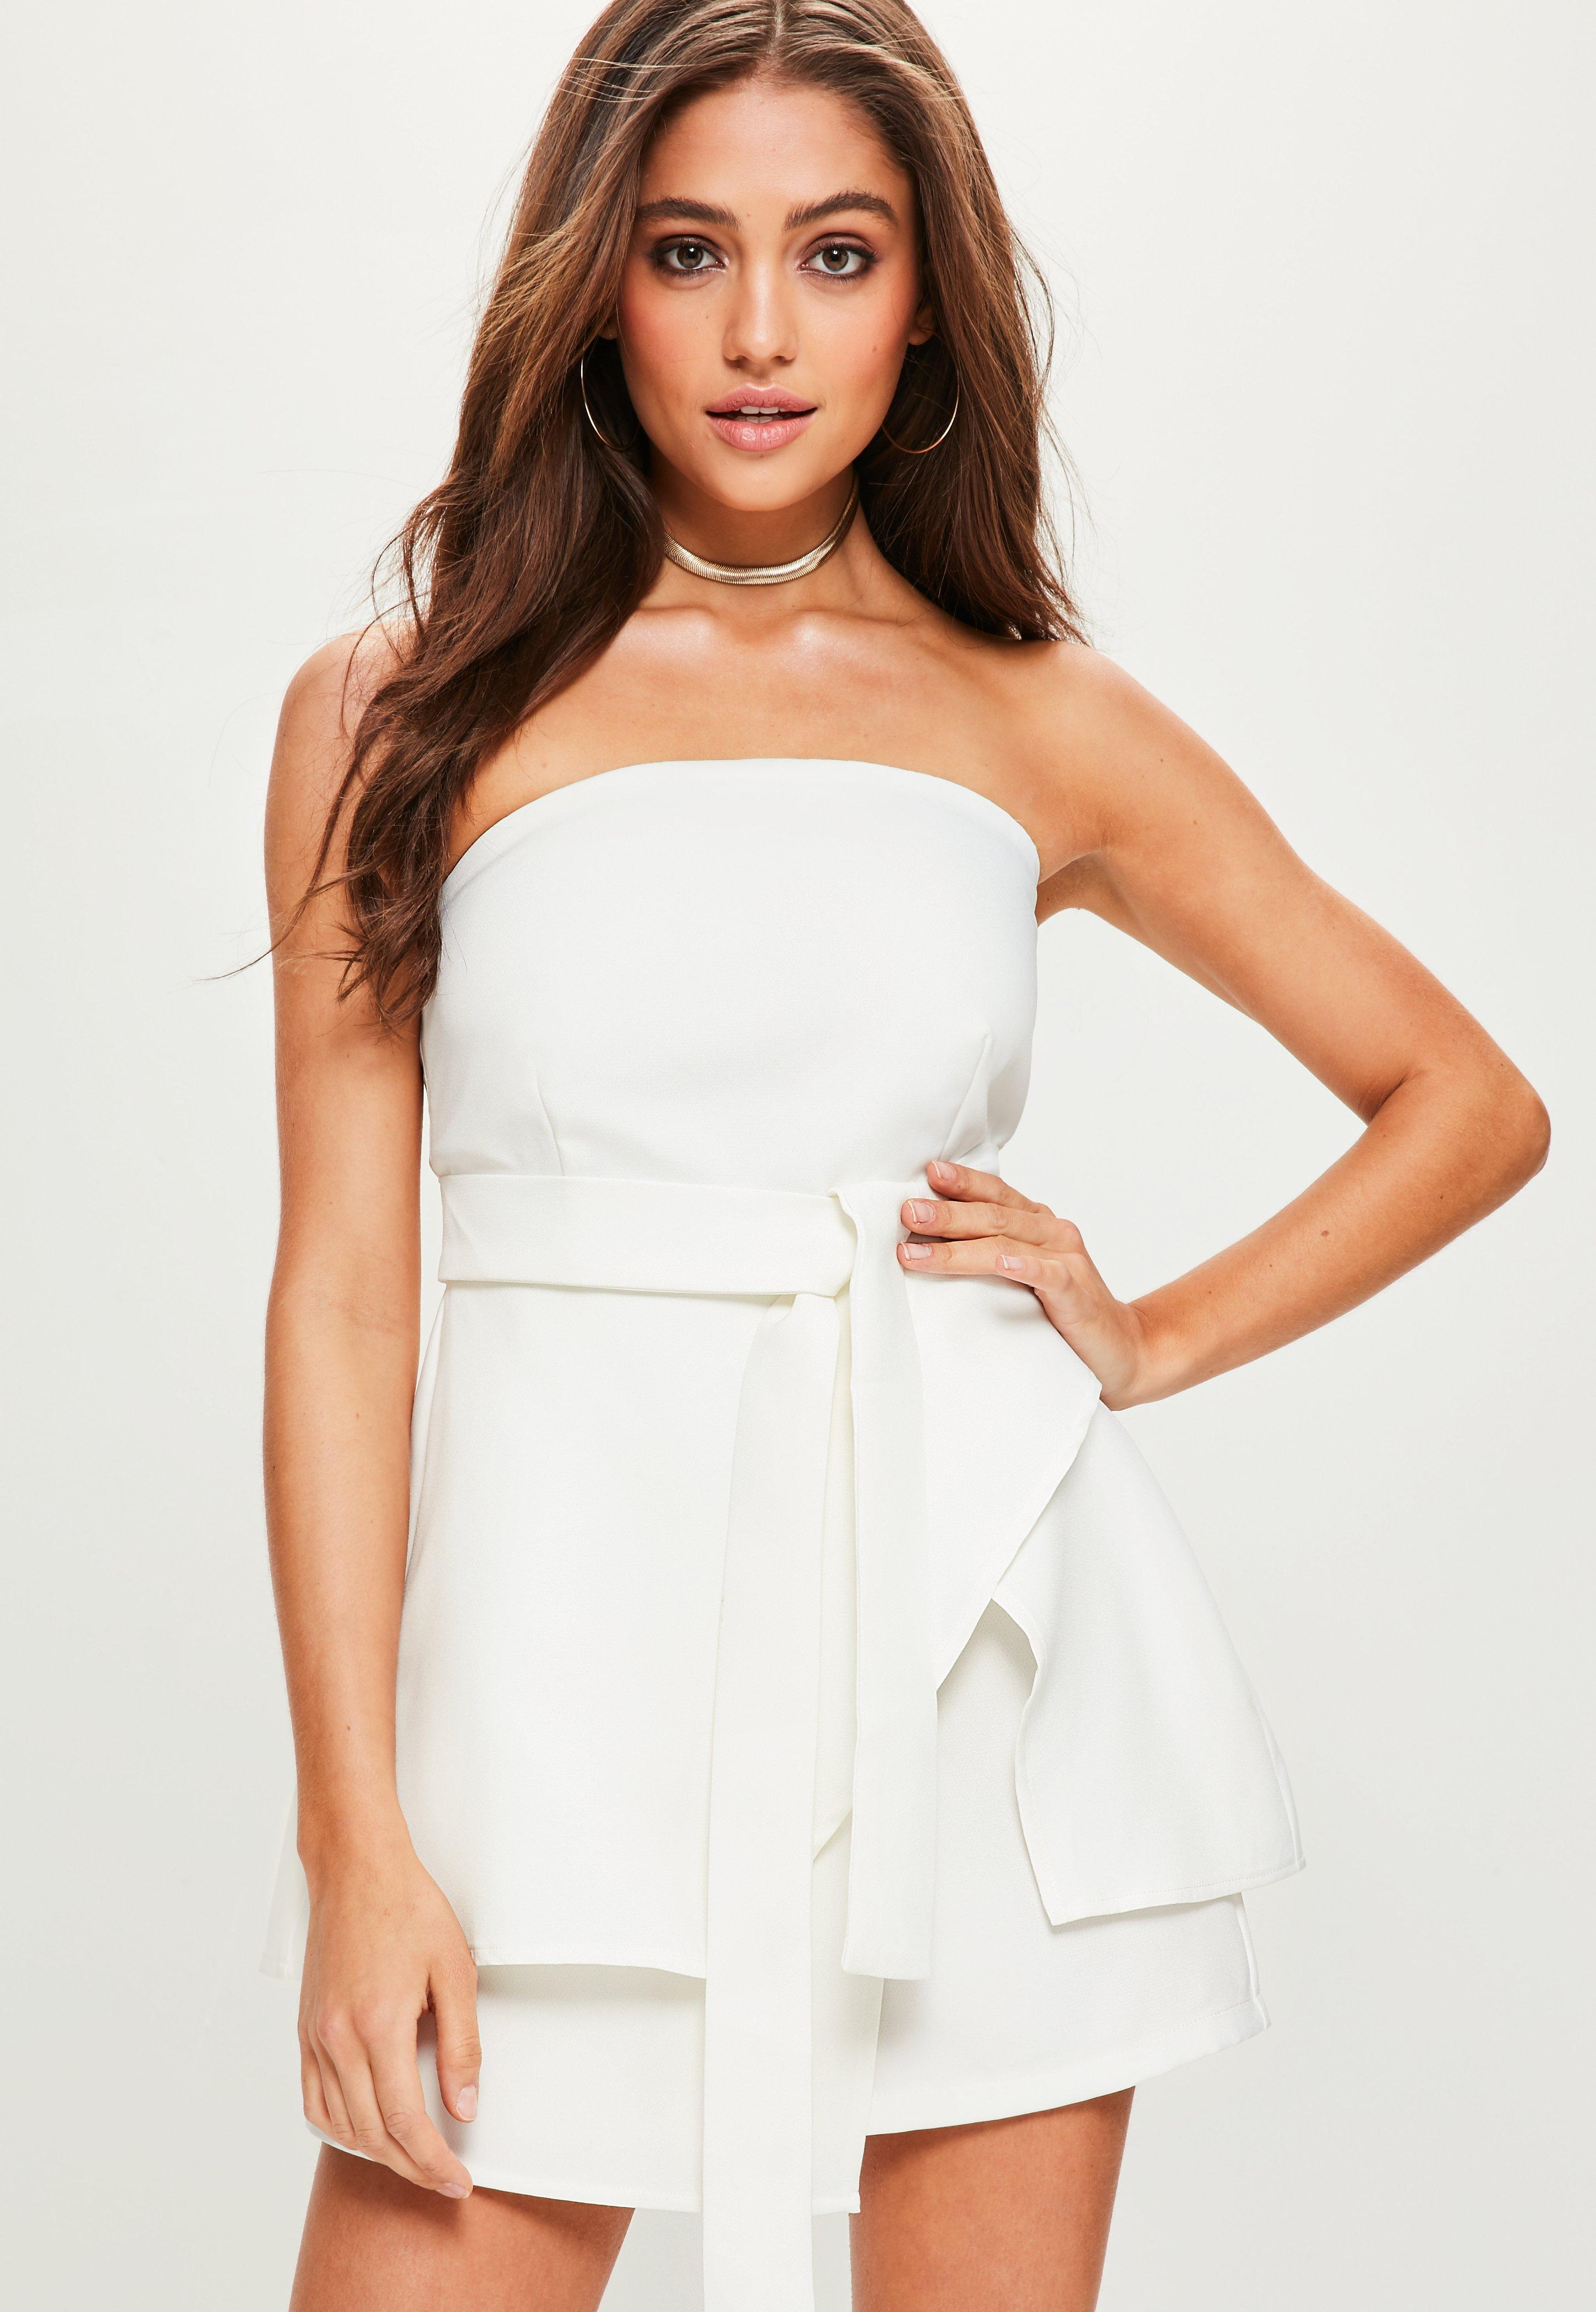 0094e35aefe Lyst - Missguided White Bandeau Tie Waist Skort Playsuit in White ...